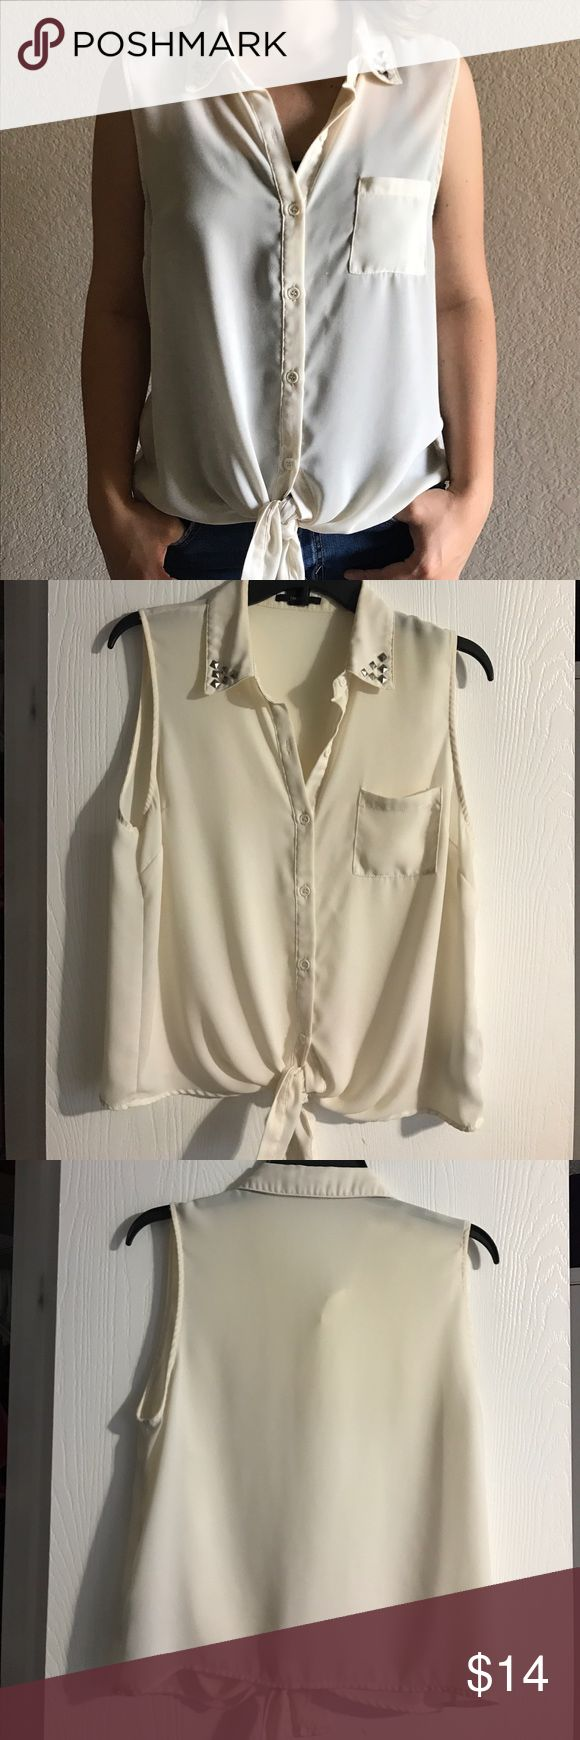 White Tank Top With Studded Collar This white and loose flowing tank top/ blouse, is made to tie together in the front and Studded along the collar. It is slightly sheer so you can pair this top with a white cami or go for a bolder look and try adding some color! Forever 21 Tops Tank Tops